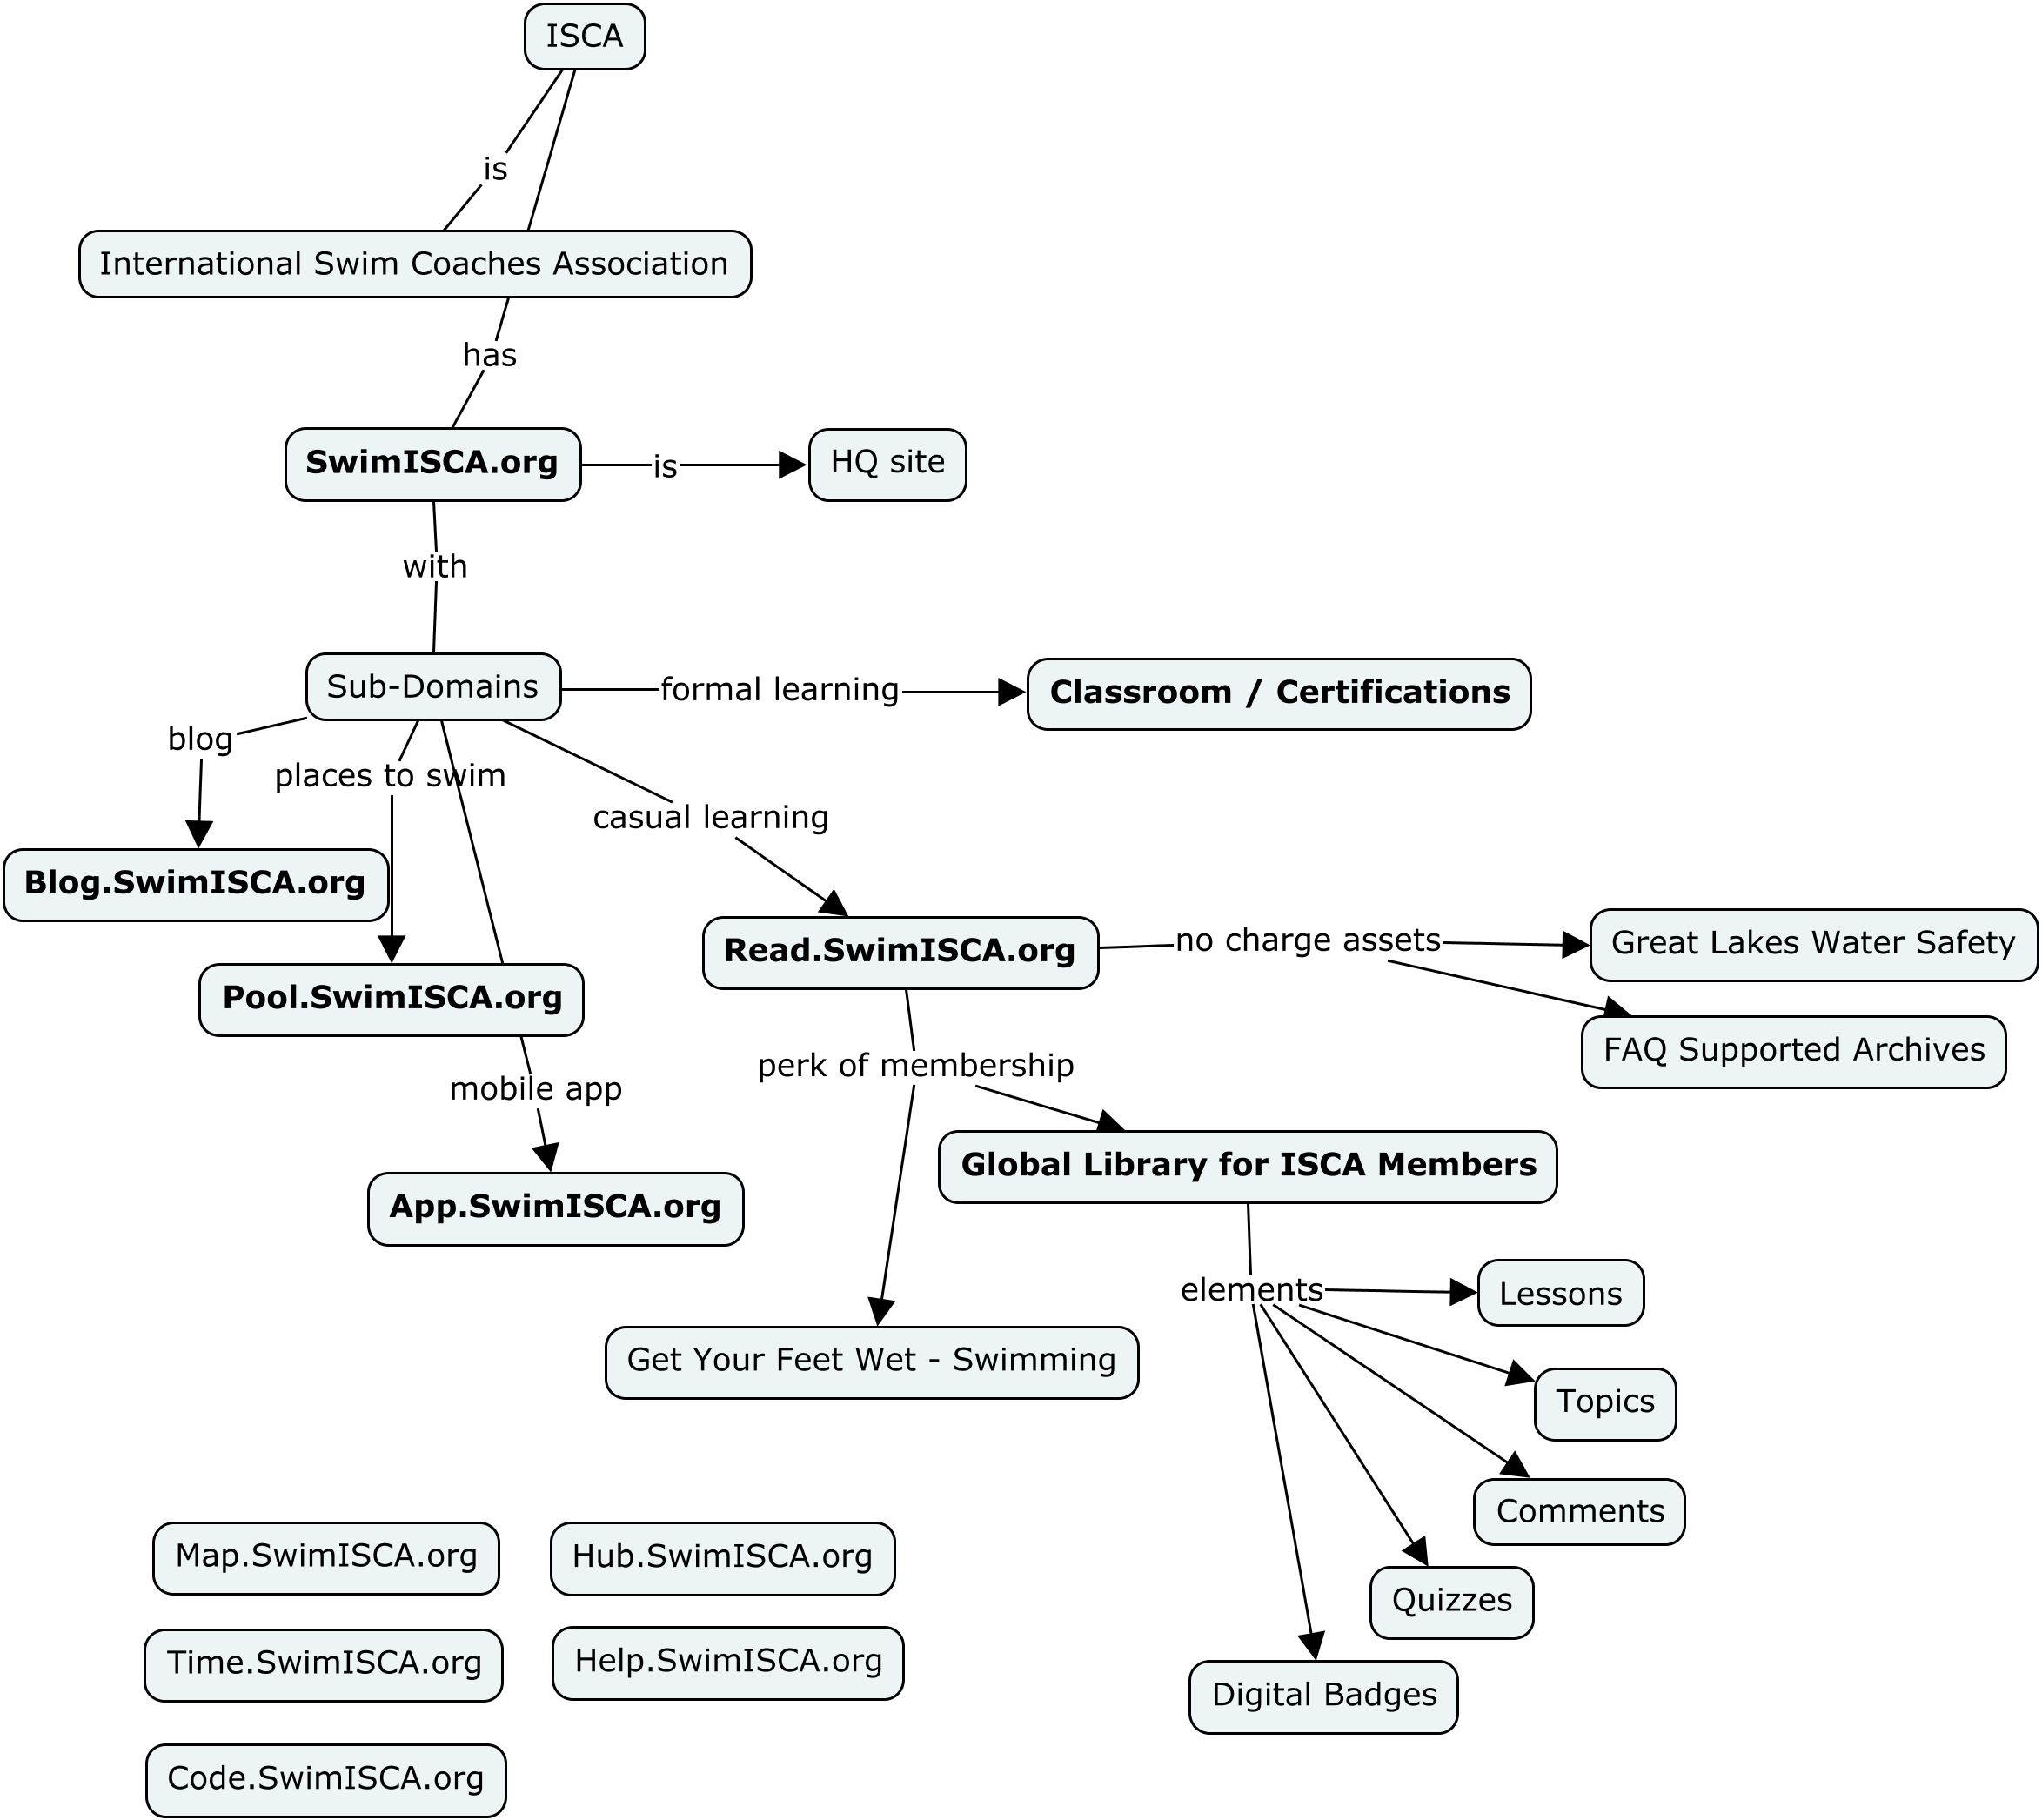 Concept Map of ISCA digital assets